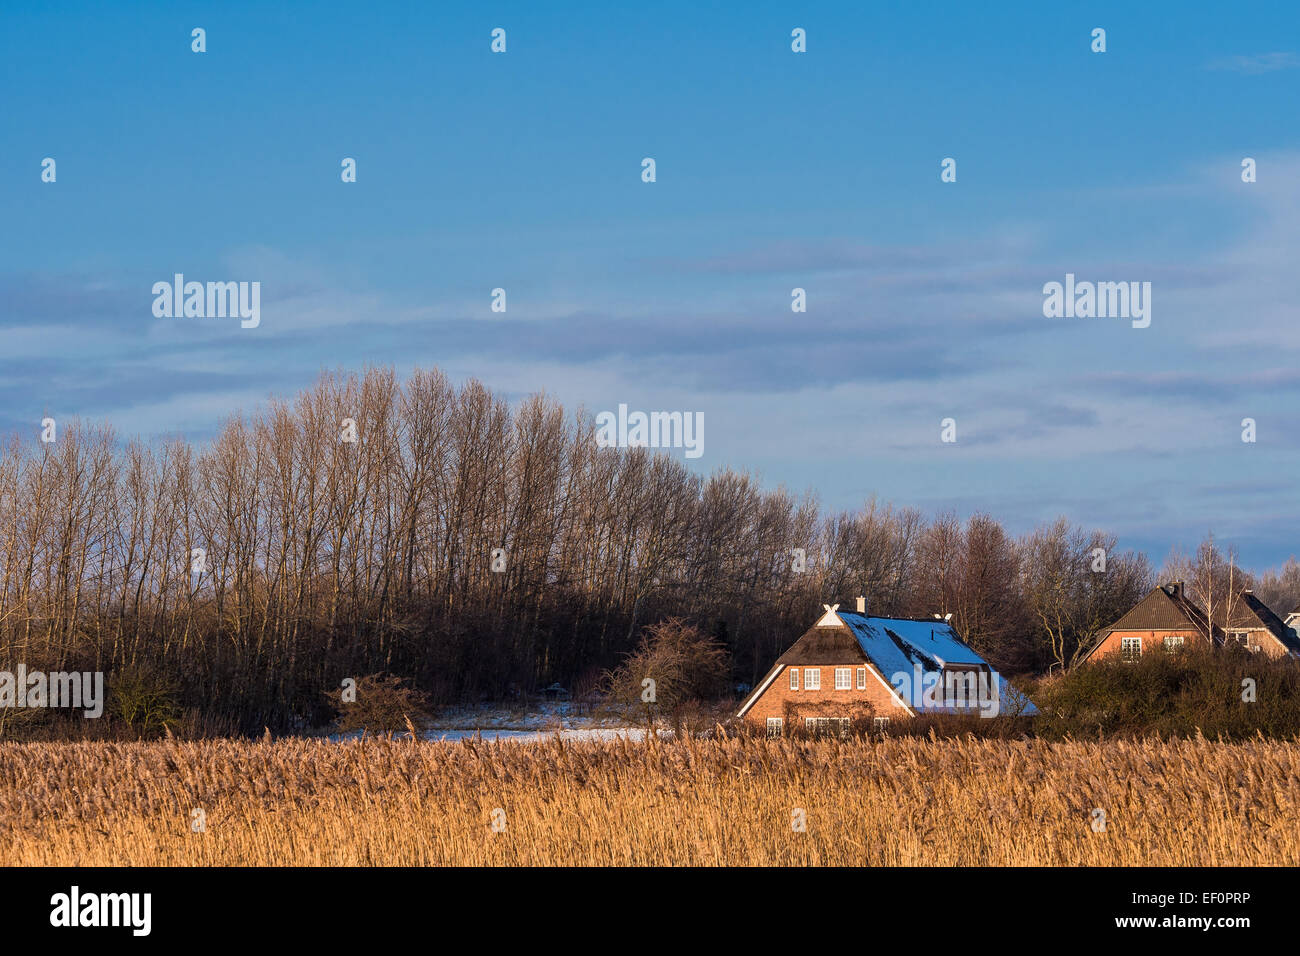 Landscape on shore of the Baltic Sea in Germany. - Stock Image